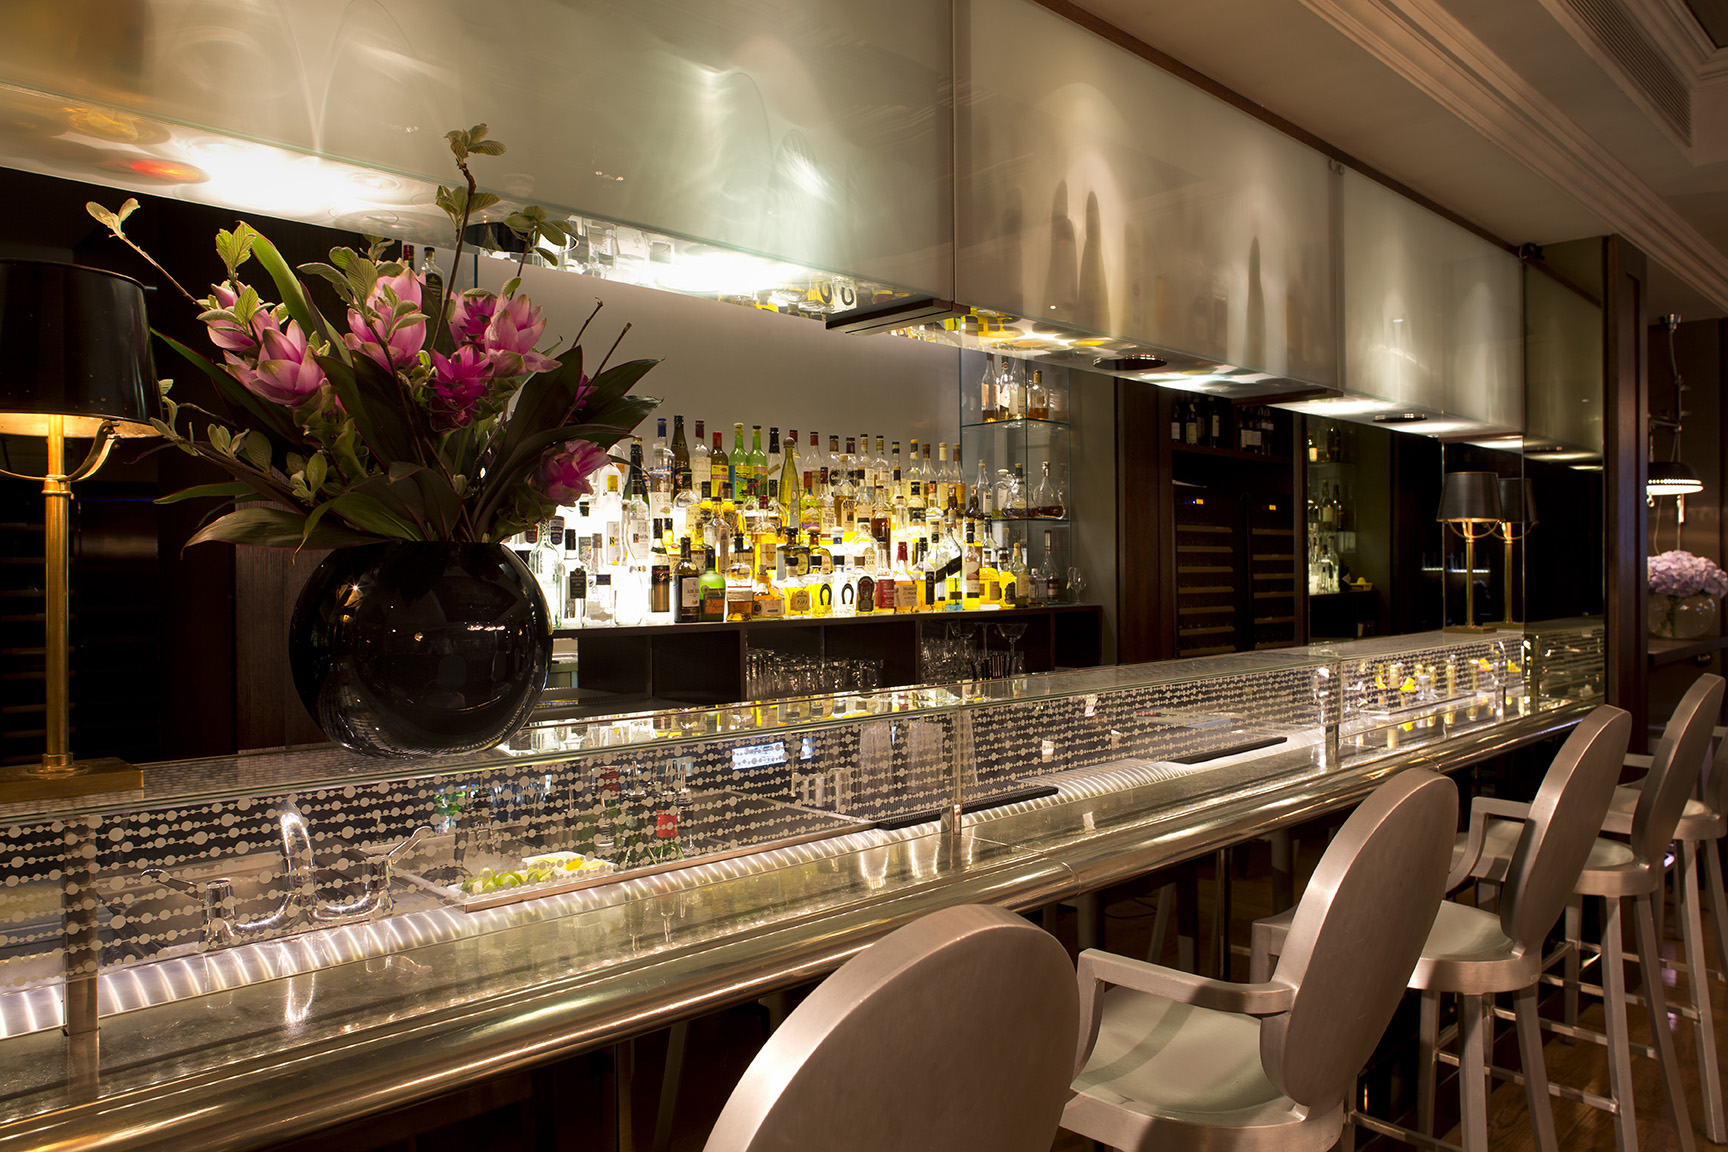 The-Bar-Closeup-The-Arch-London.-Photography-must-be-credited-to-The-Arch-London-Copy1.jpg